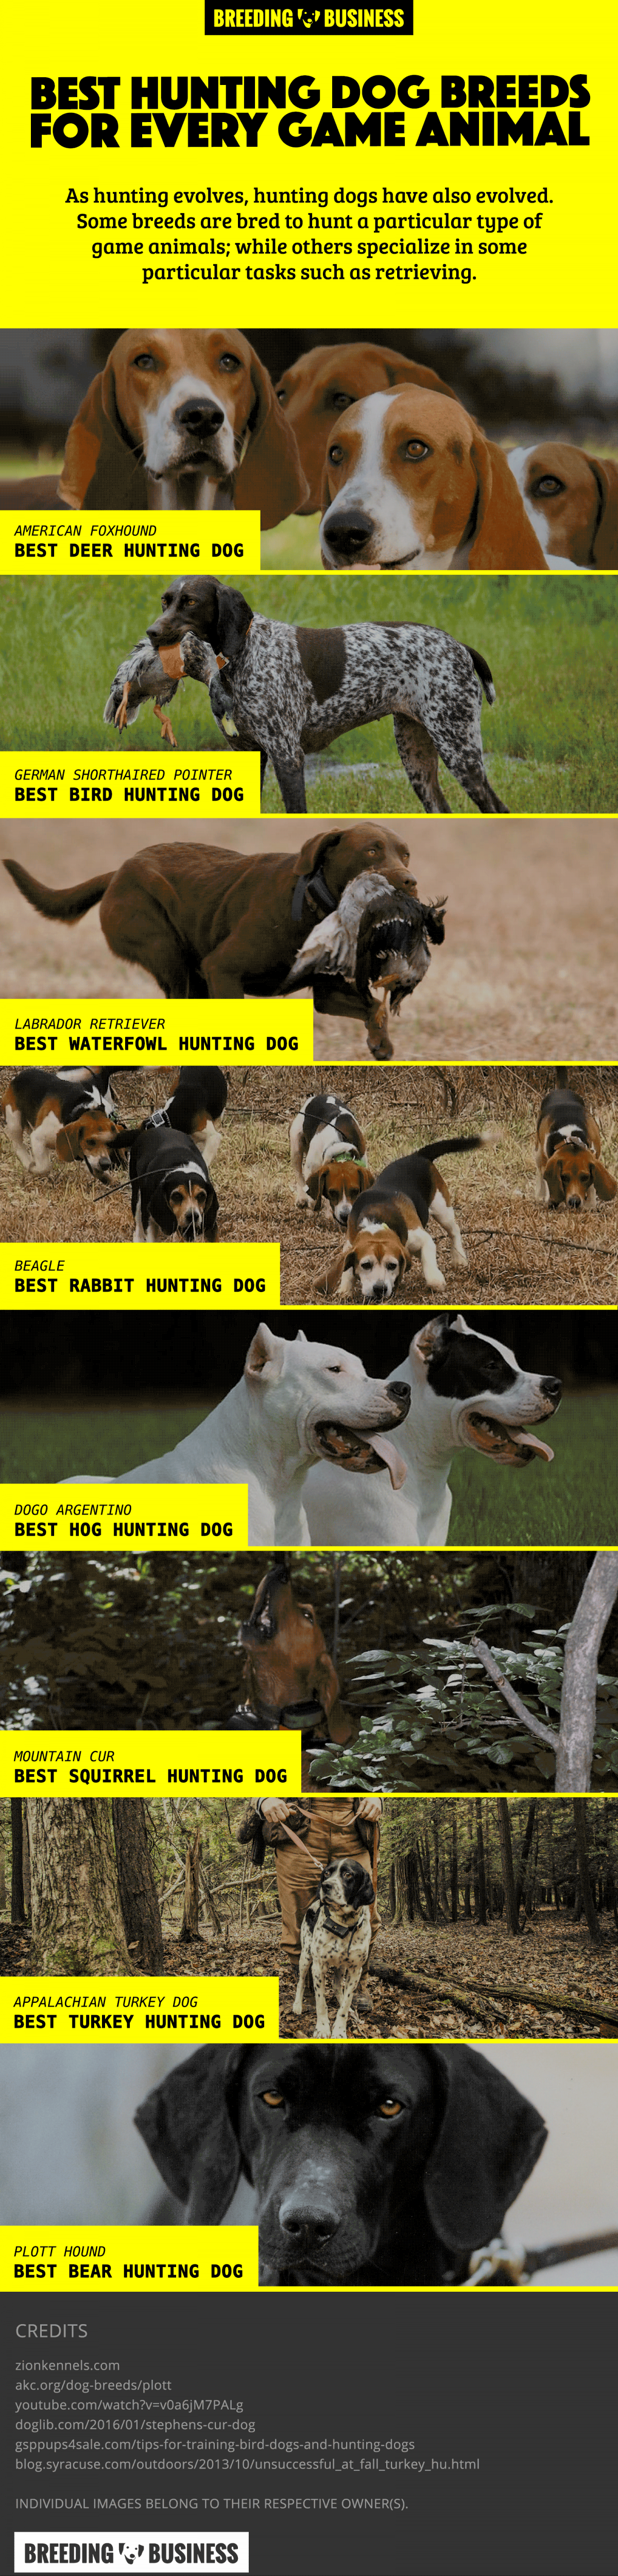 Game-Hunting Dog Breeds